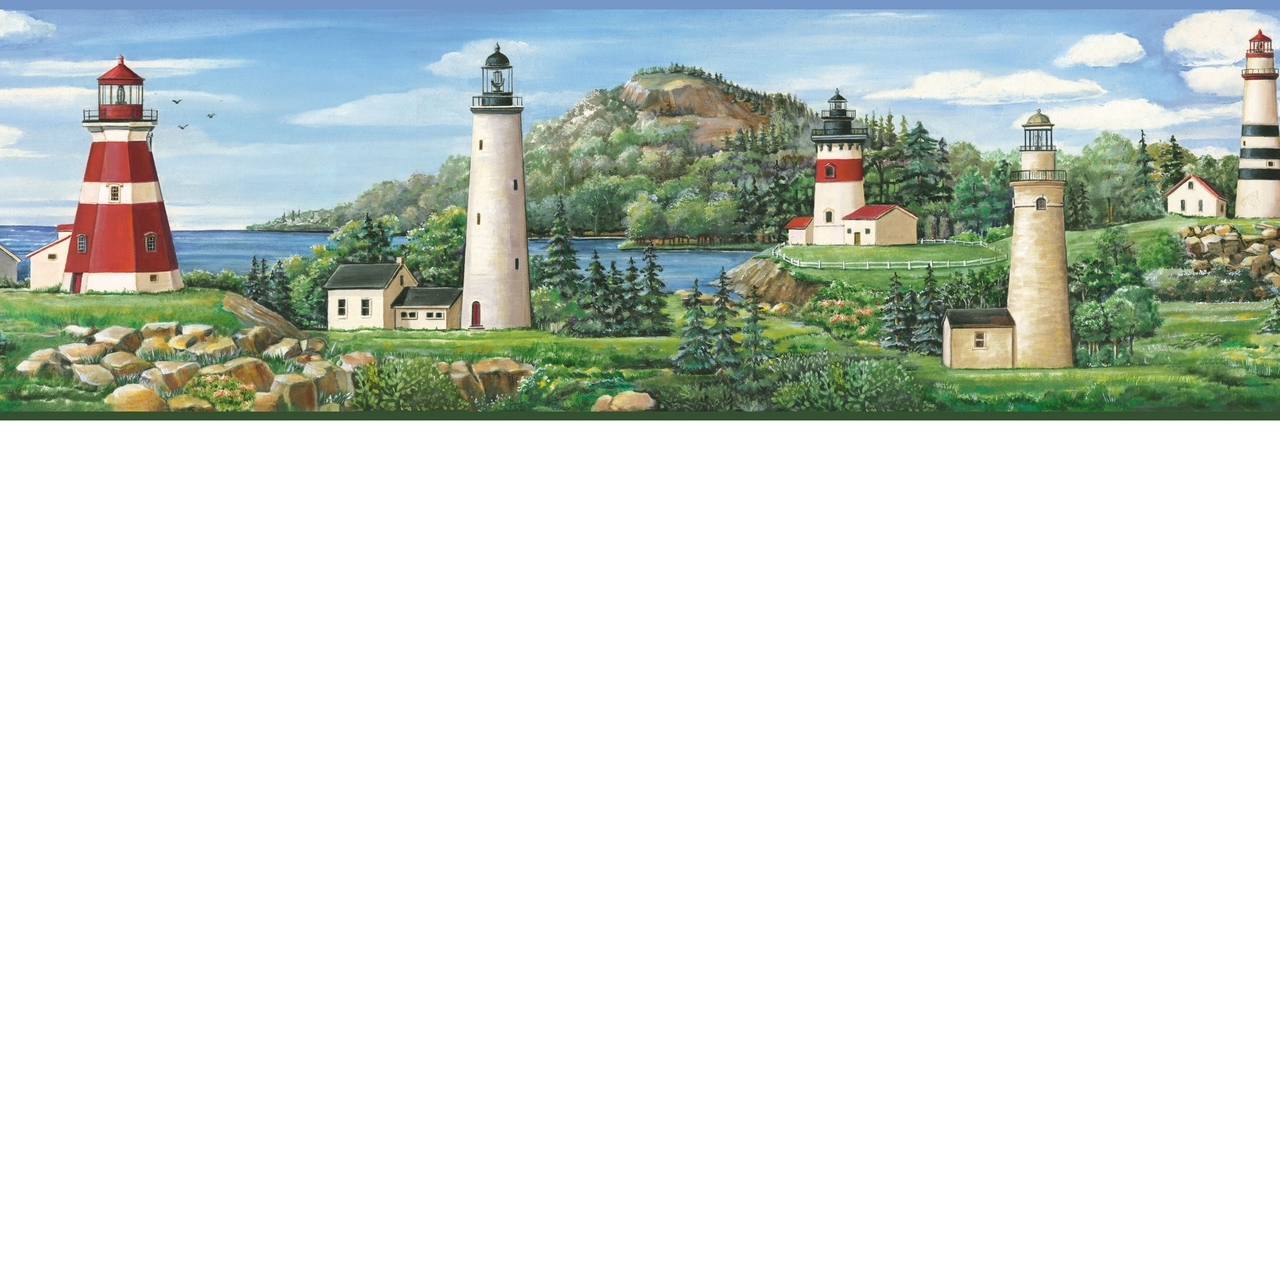 http-www-papermywalls-com-borders-by-chesapeake-lake-lighthouse-border-bbc-wallpaper-wp4403649